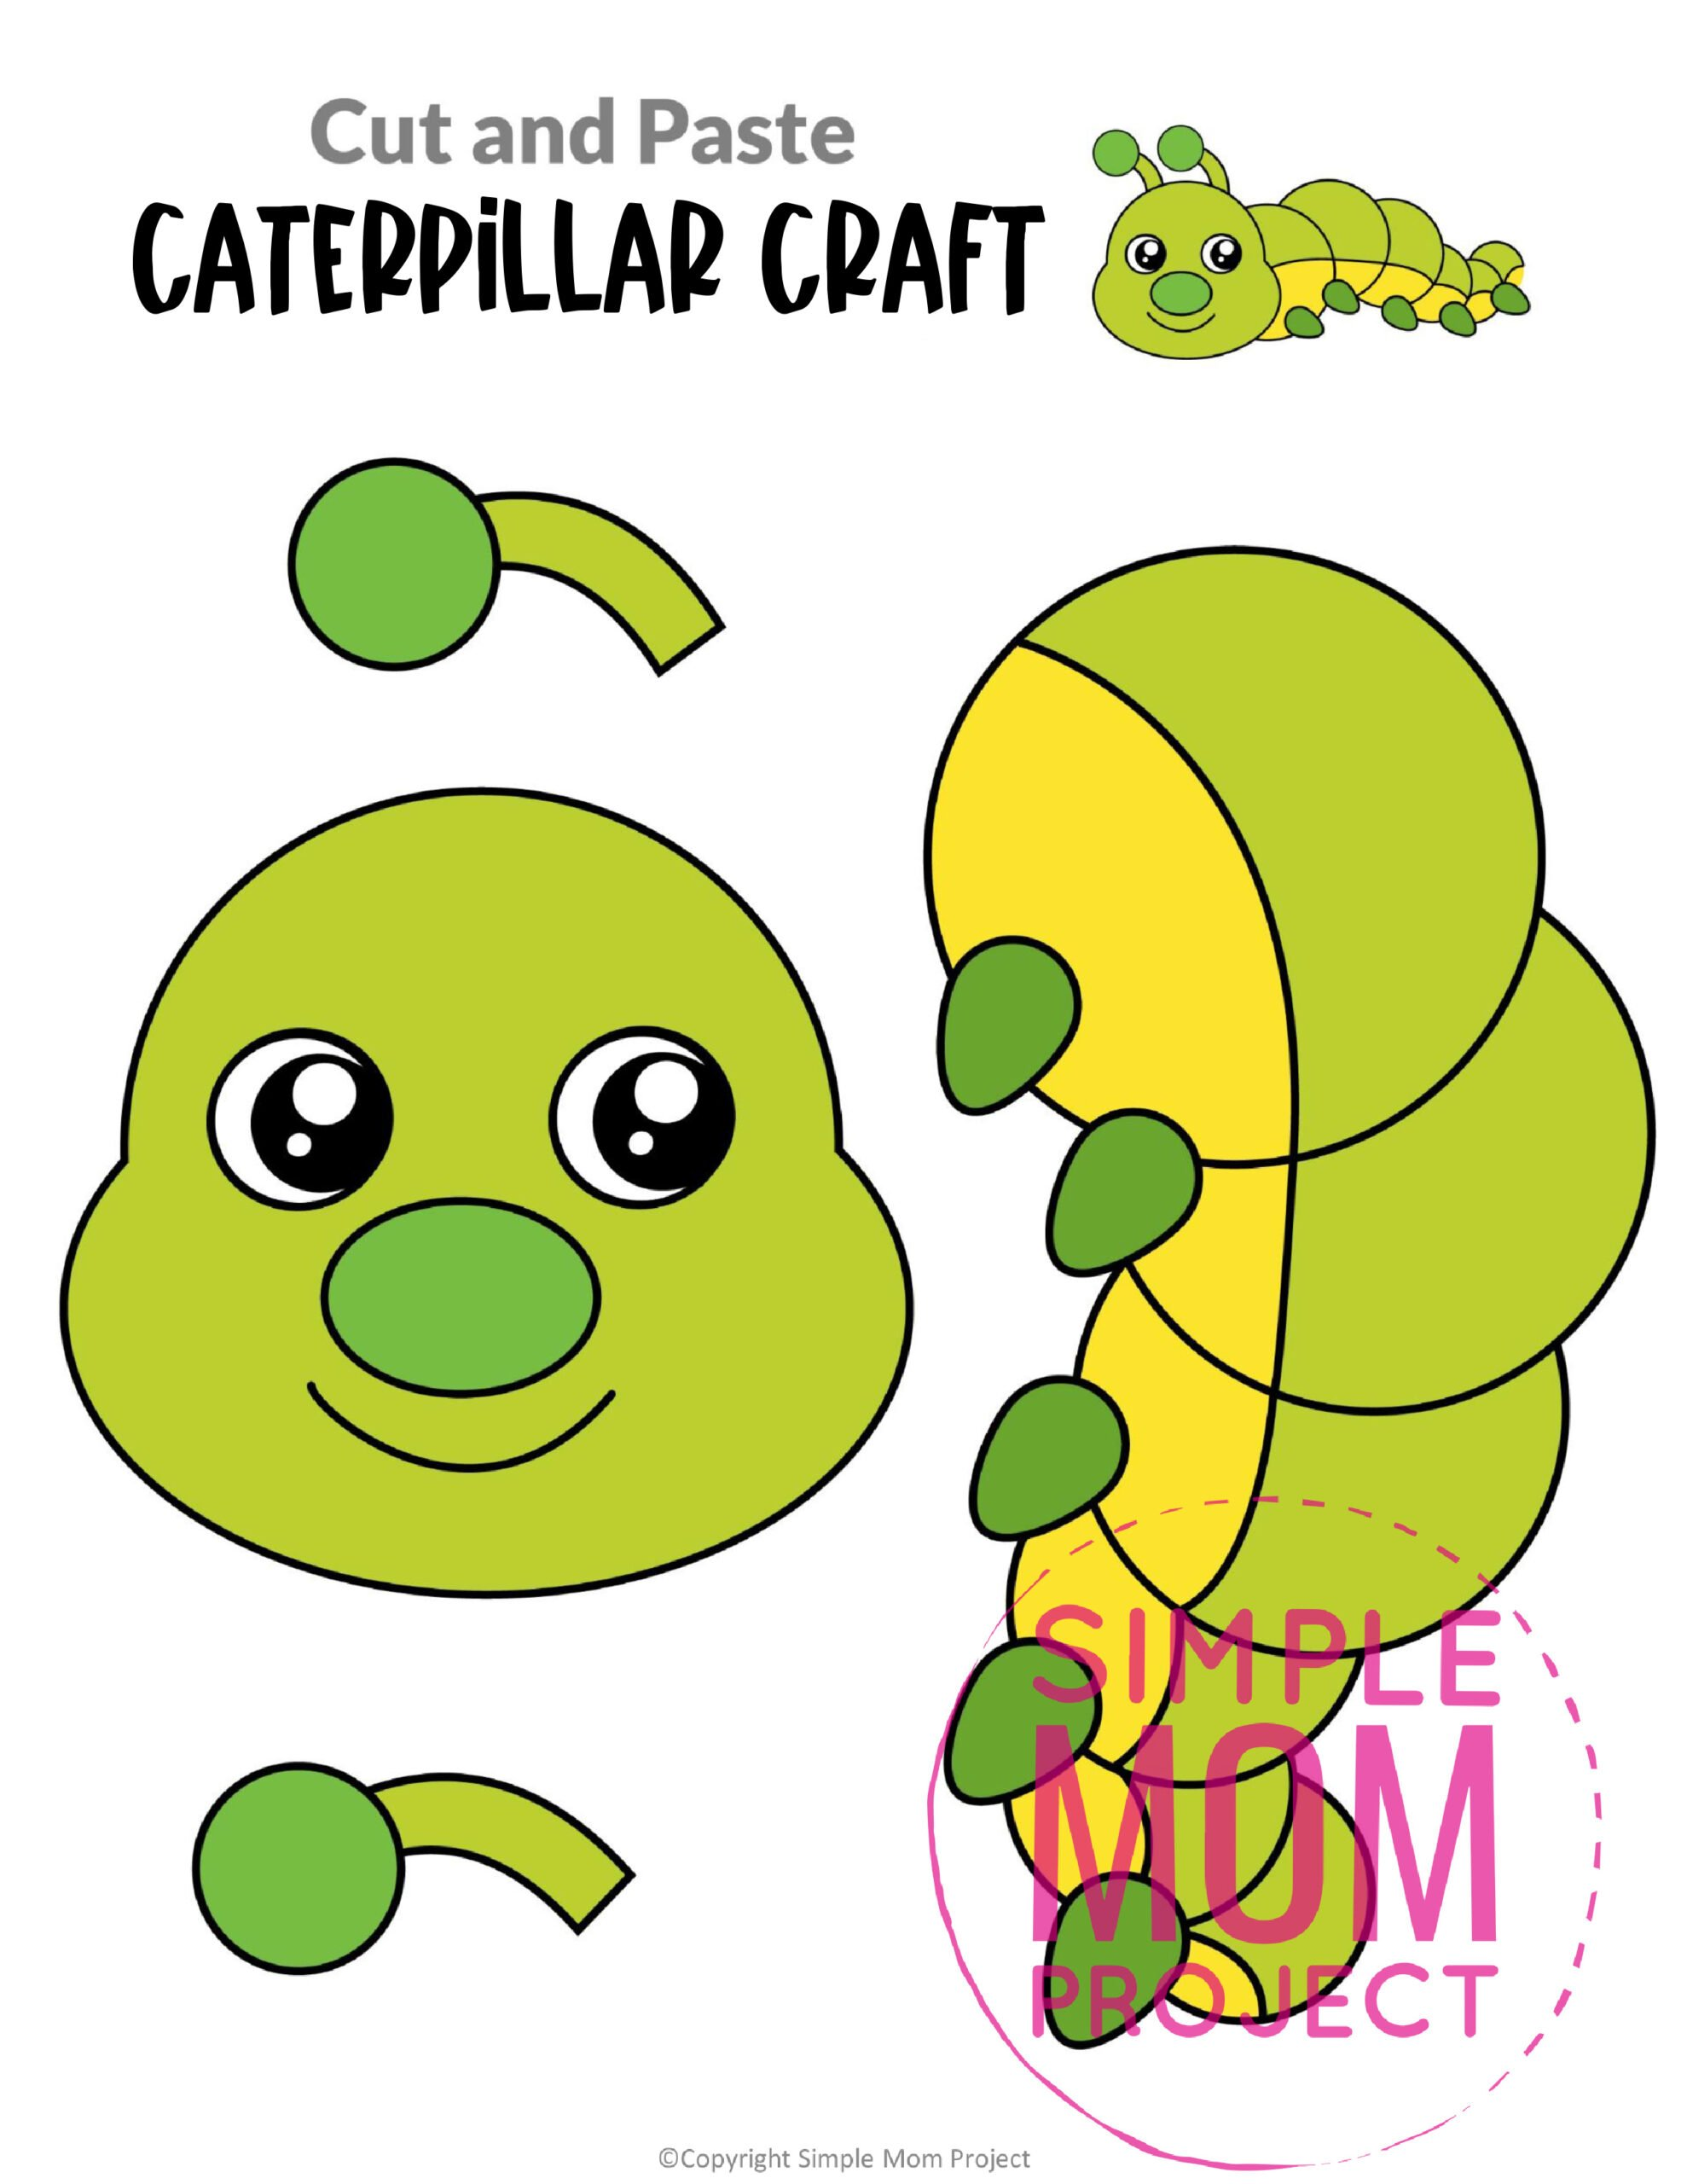 Printable Caterpillar Craft for Kids, preschoolers and toddlers